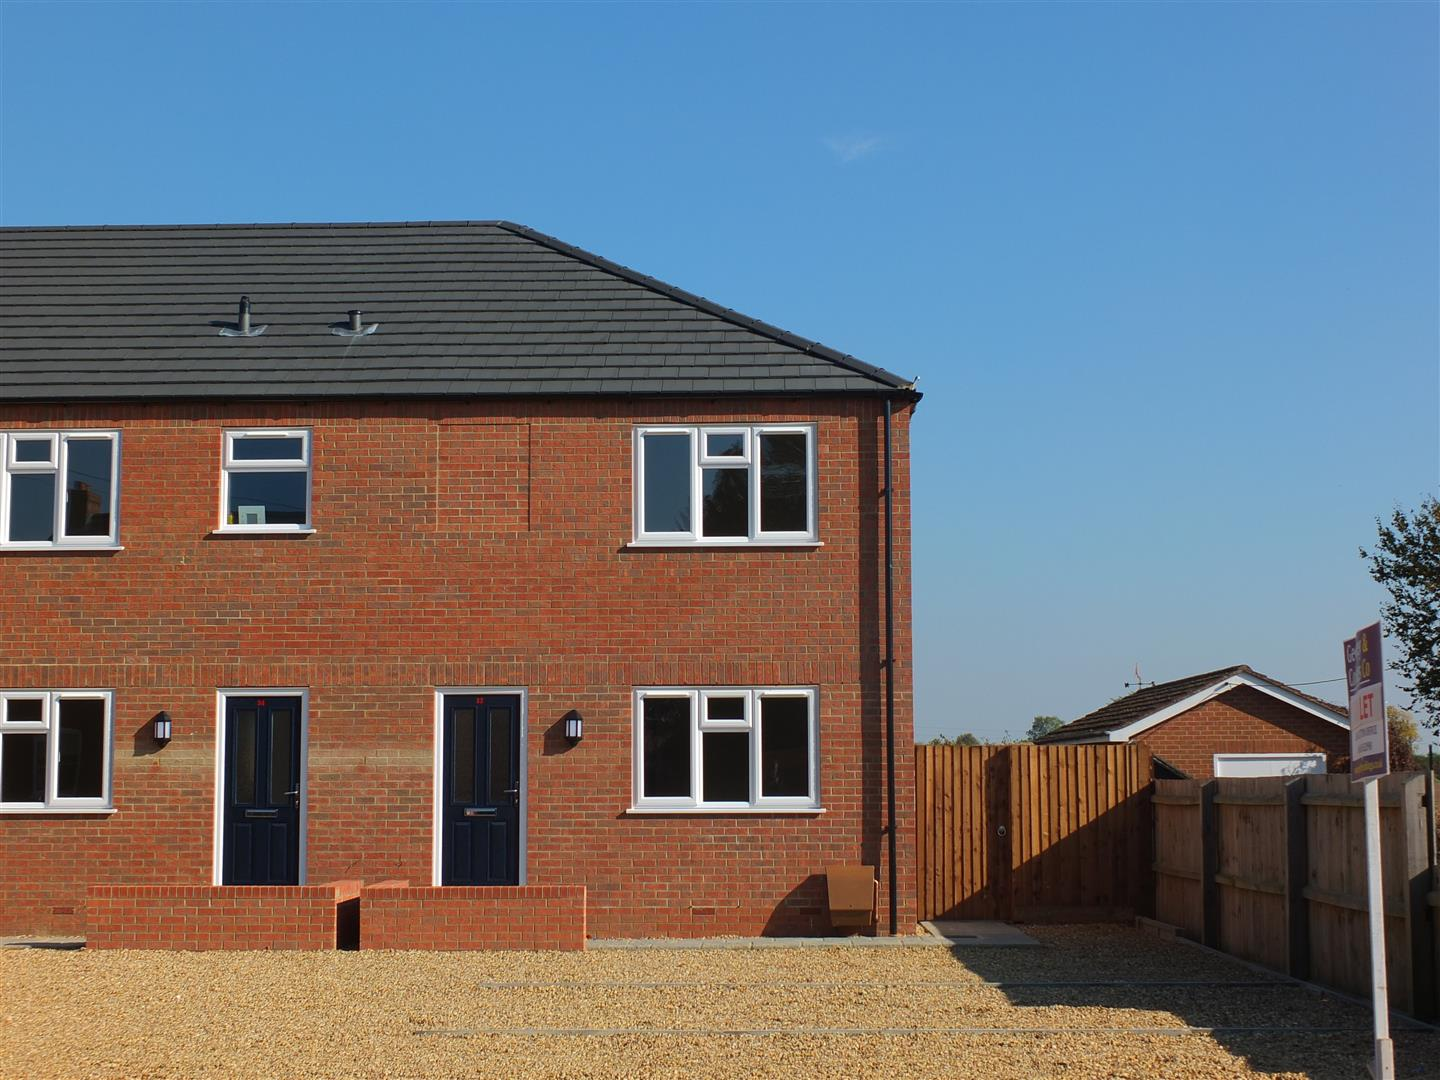 2 bed house to rent in Little London, Long Sutton Spalding - Property Image 1